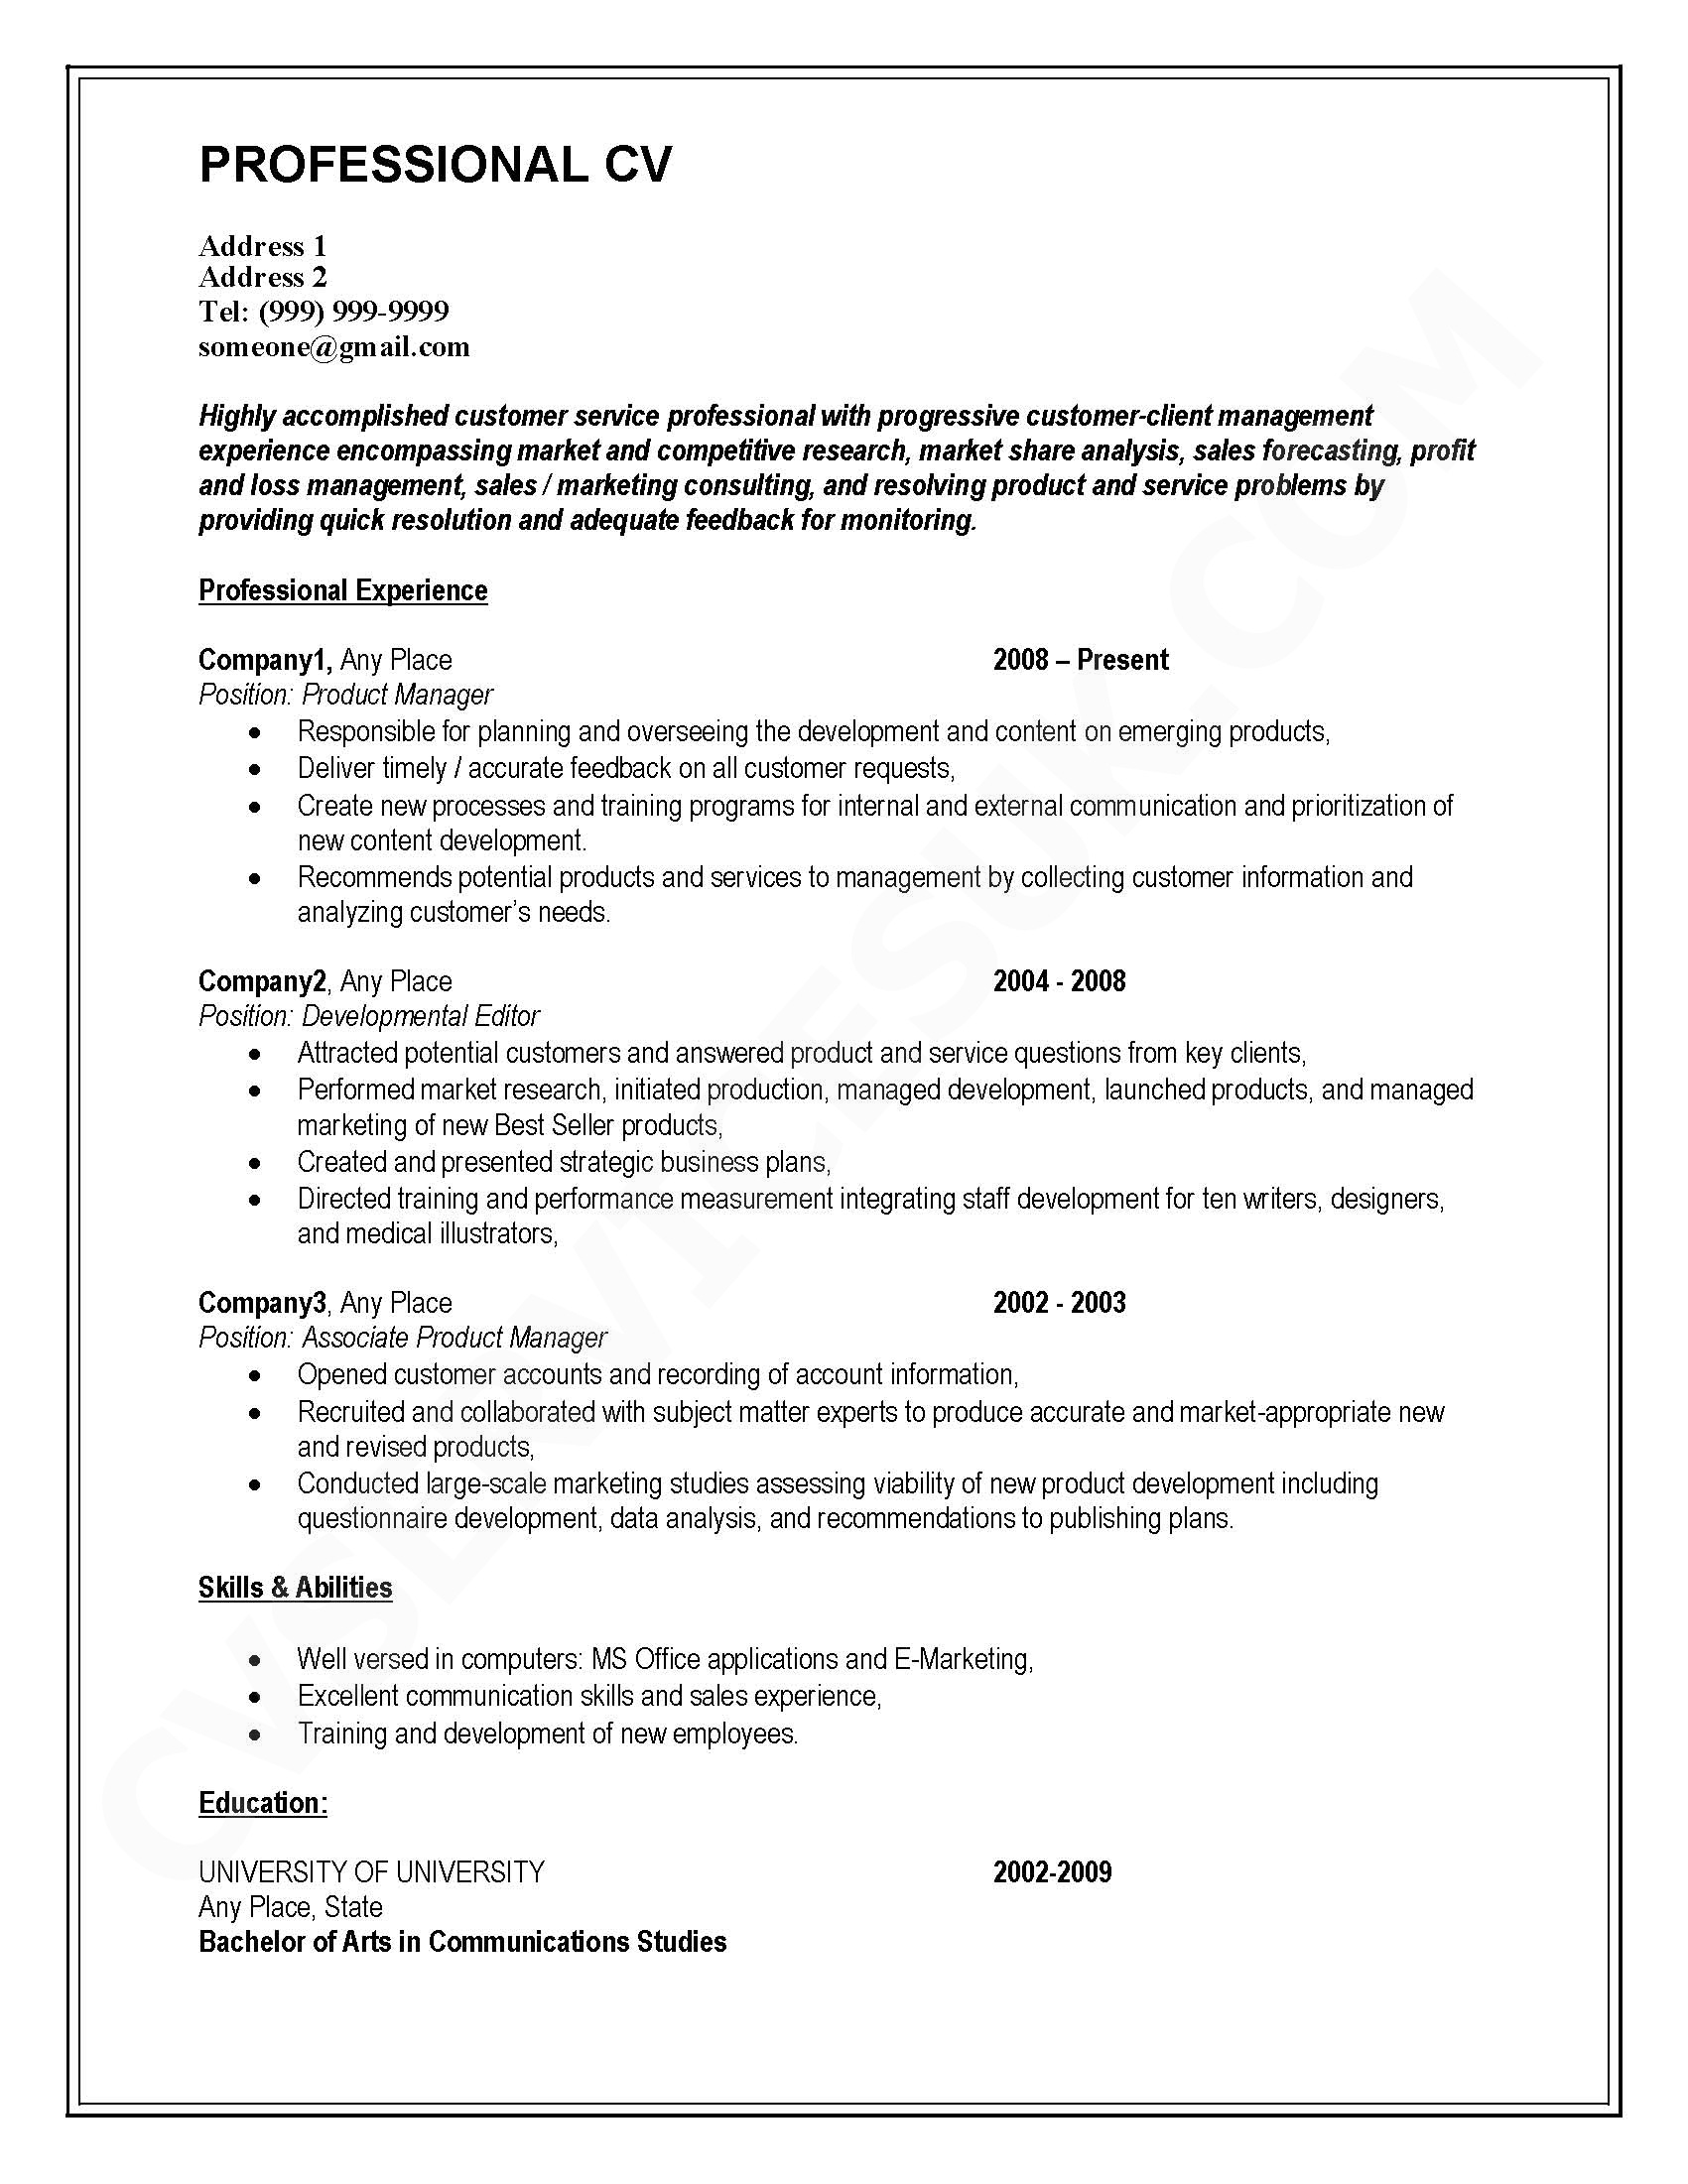 south african cv template download - cv format for matric intermediate